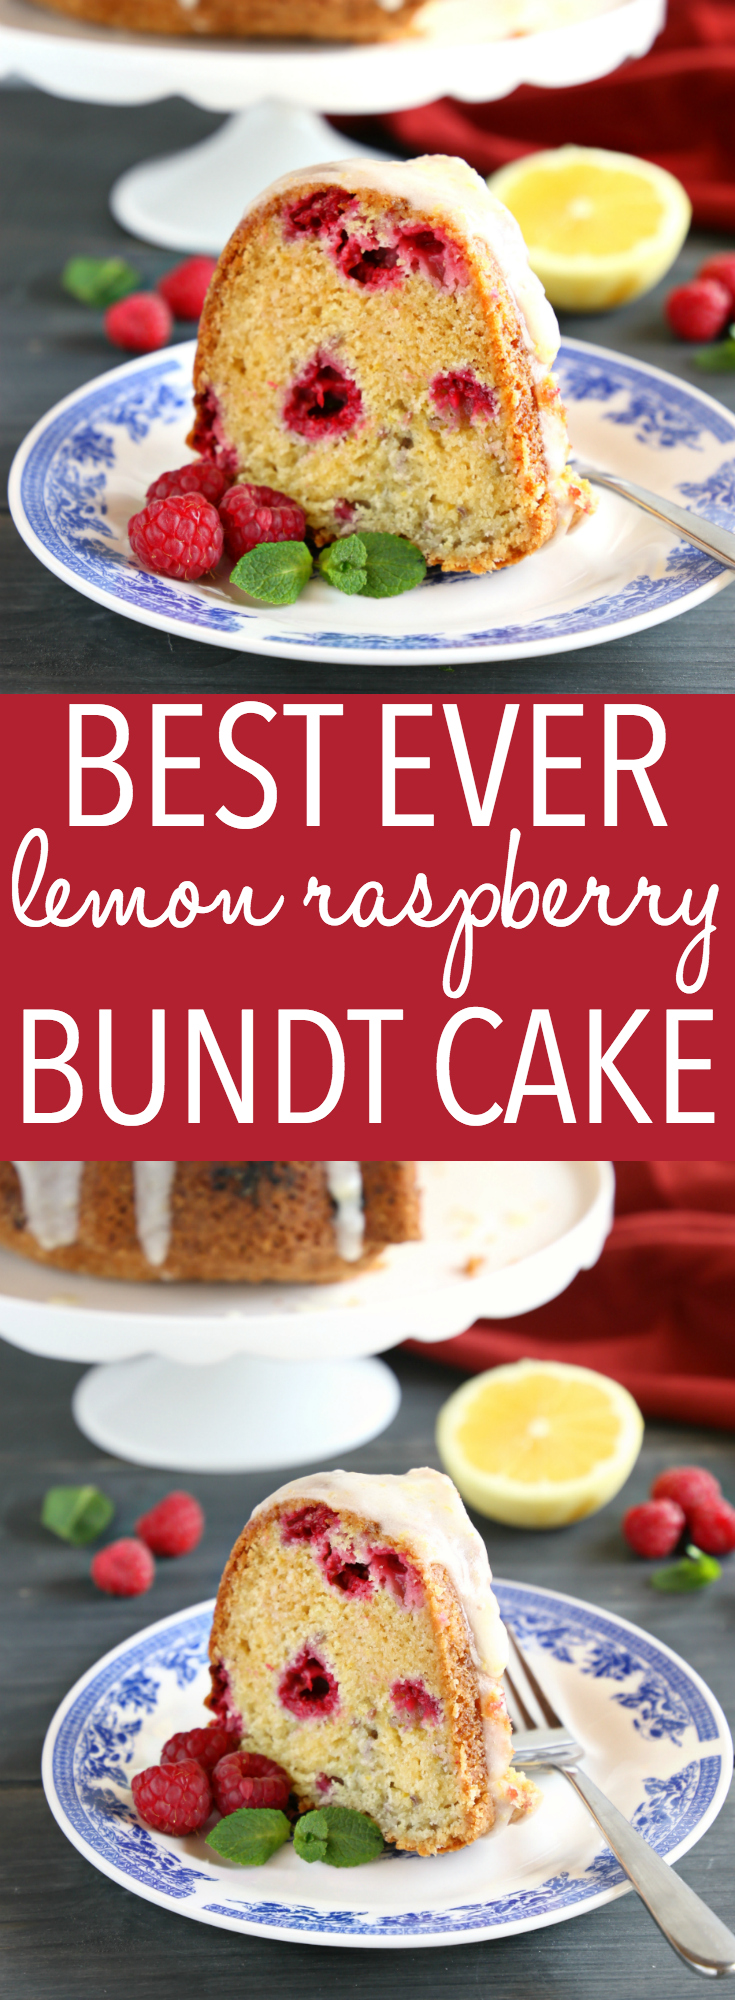 This Lemon Raspberry Glazed Bundt Cake is the perfect summer dessert for raspberry season! It's easy to make, and perfectly moist with a sweet lemon glaze! Recipe from thebusybaker.ca! #bundtcake #raspberry #lemon #cake #recipe #easyrecipe #homemade #summer #dessert #berries #berry #sweet #treat #easytomake #vintage #glazed #glaze